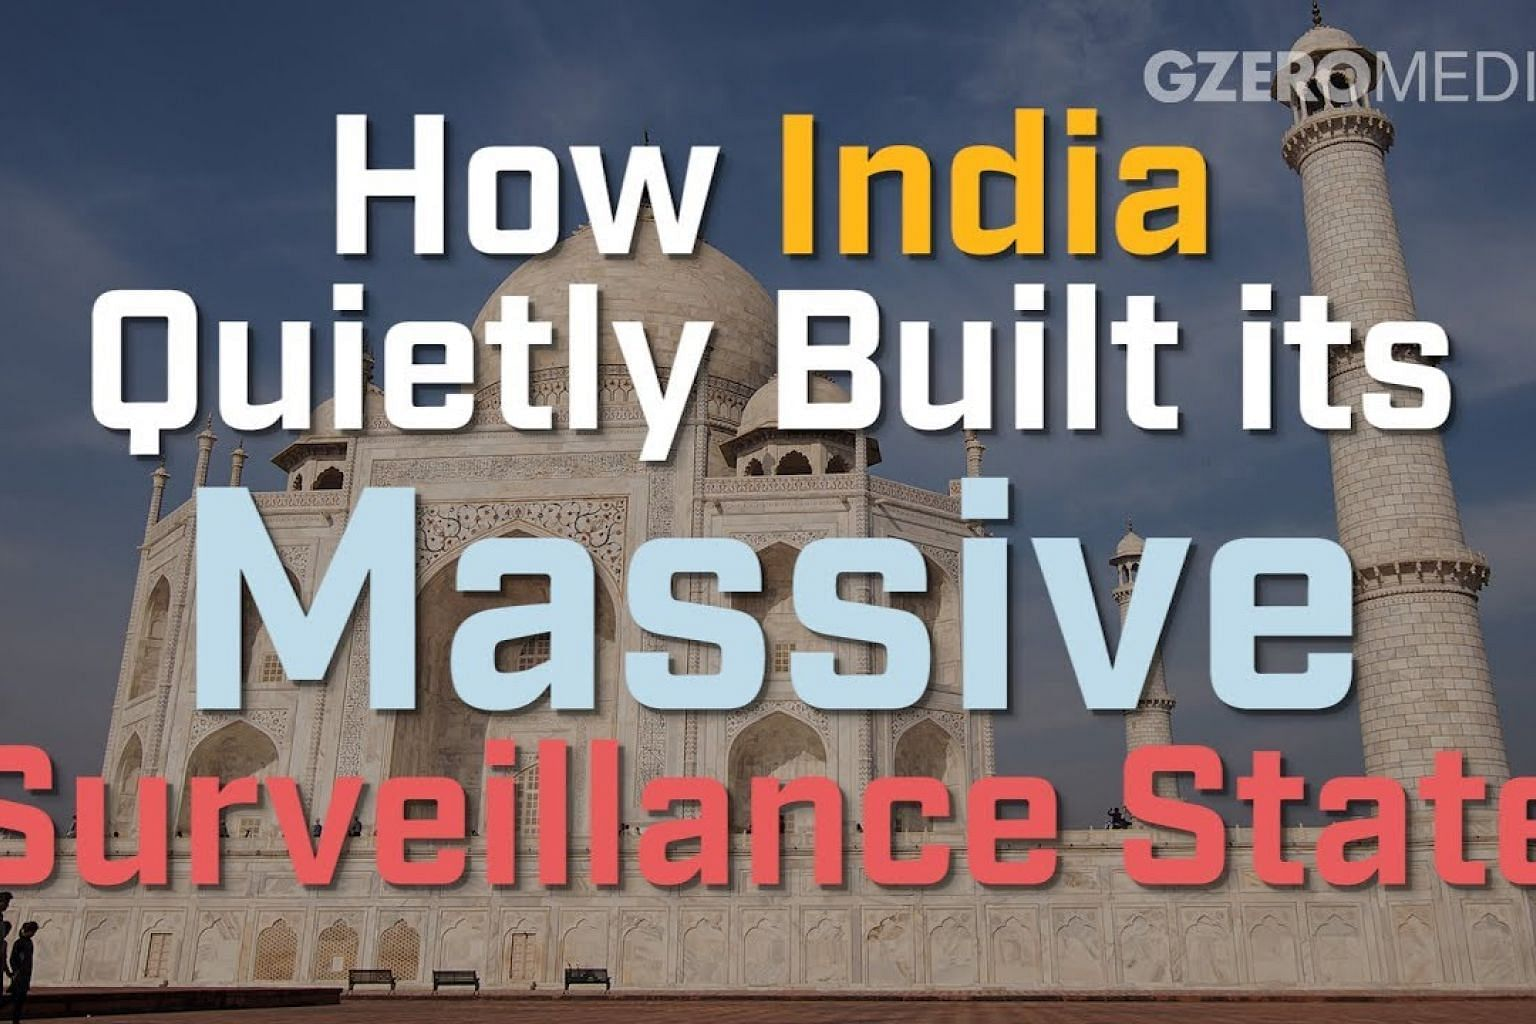 India's surveillance state; scanning 2 billion eyes